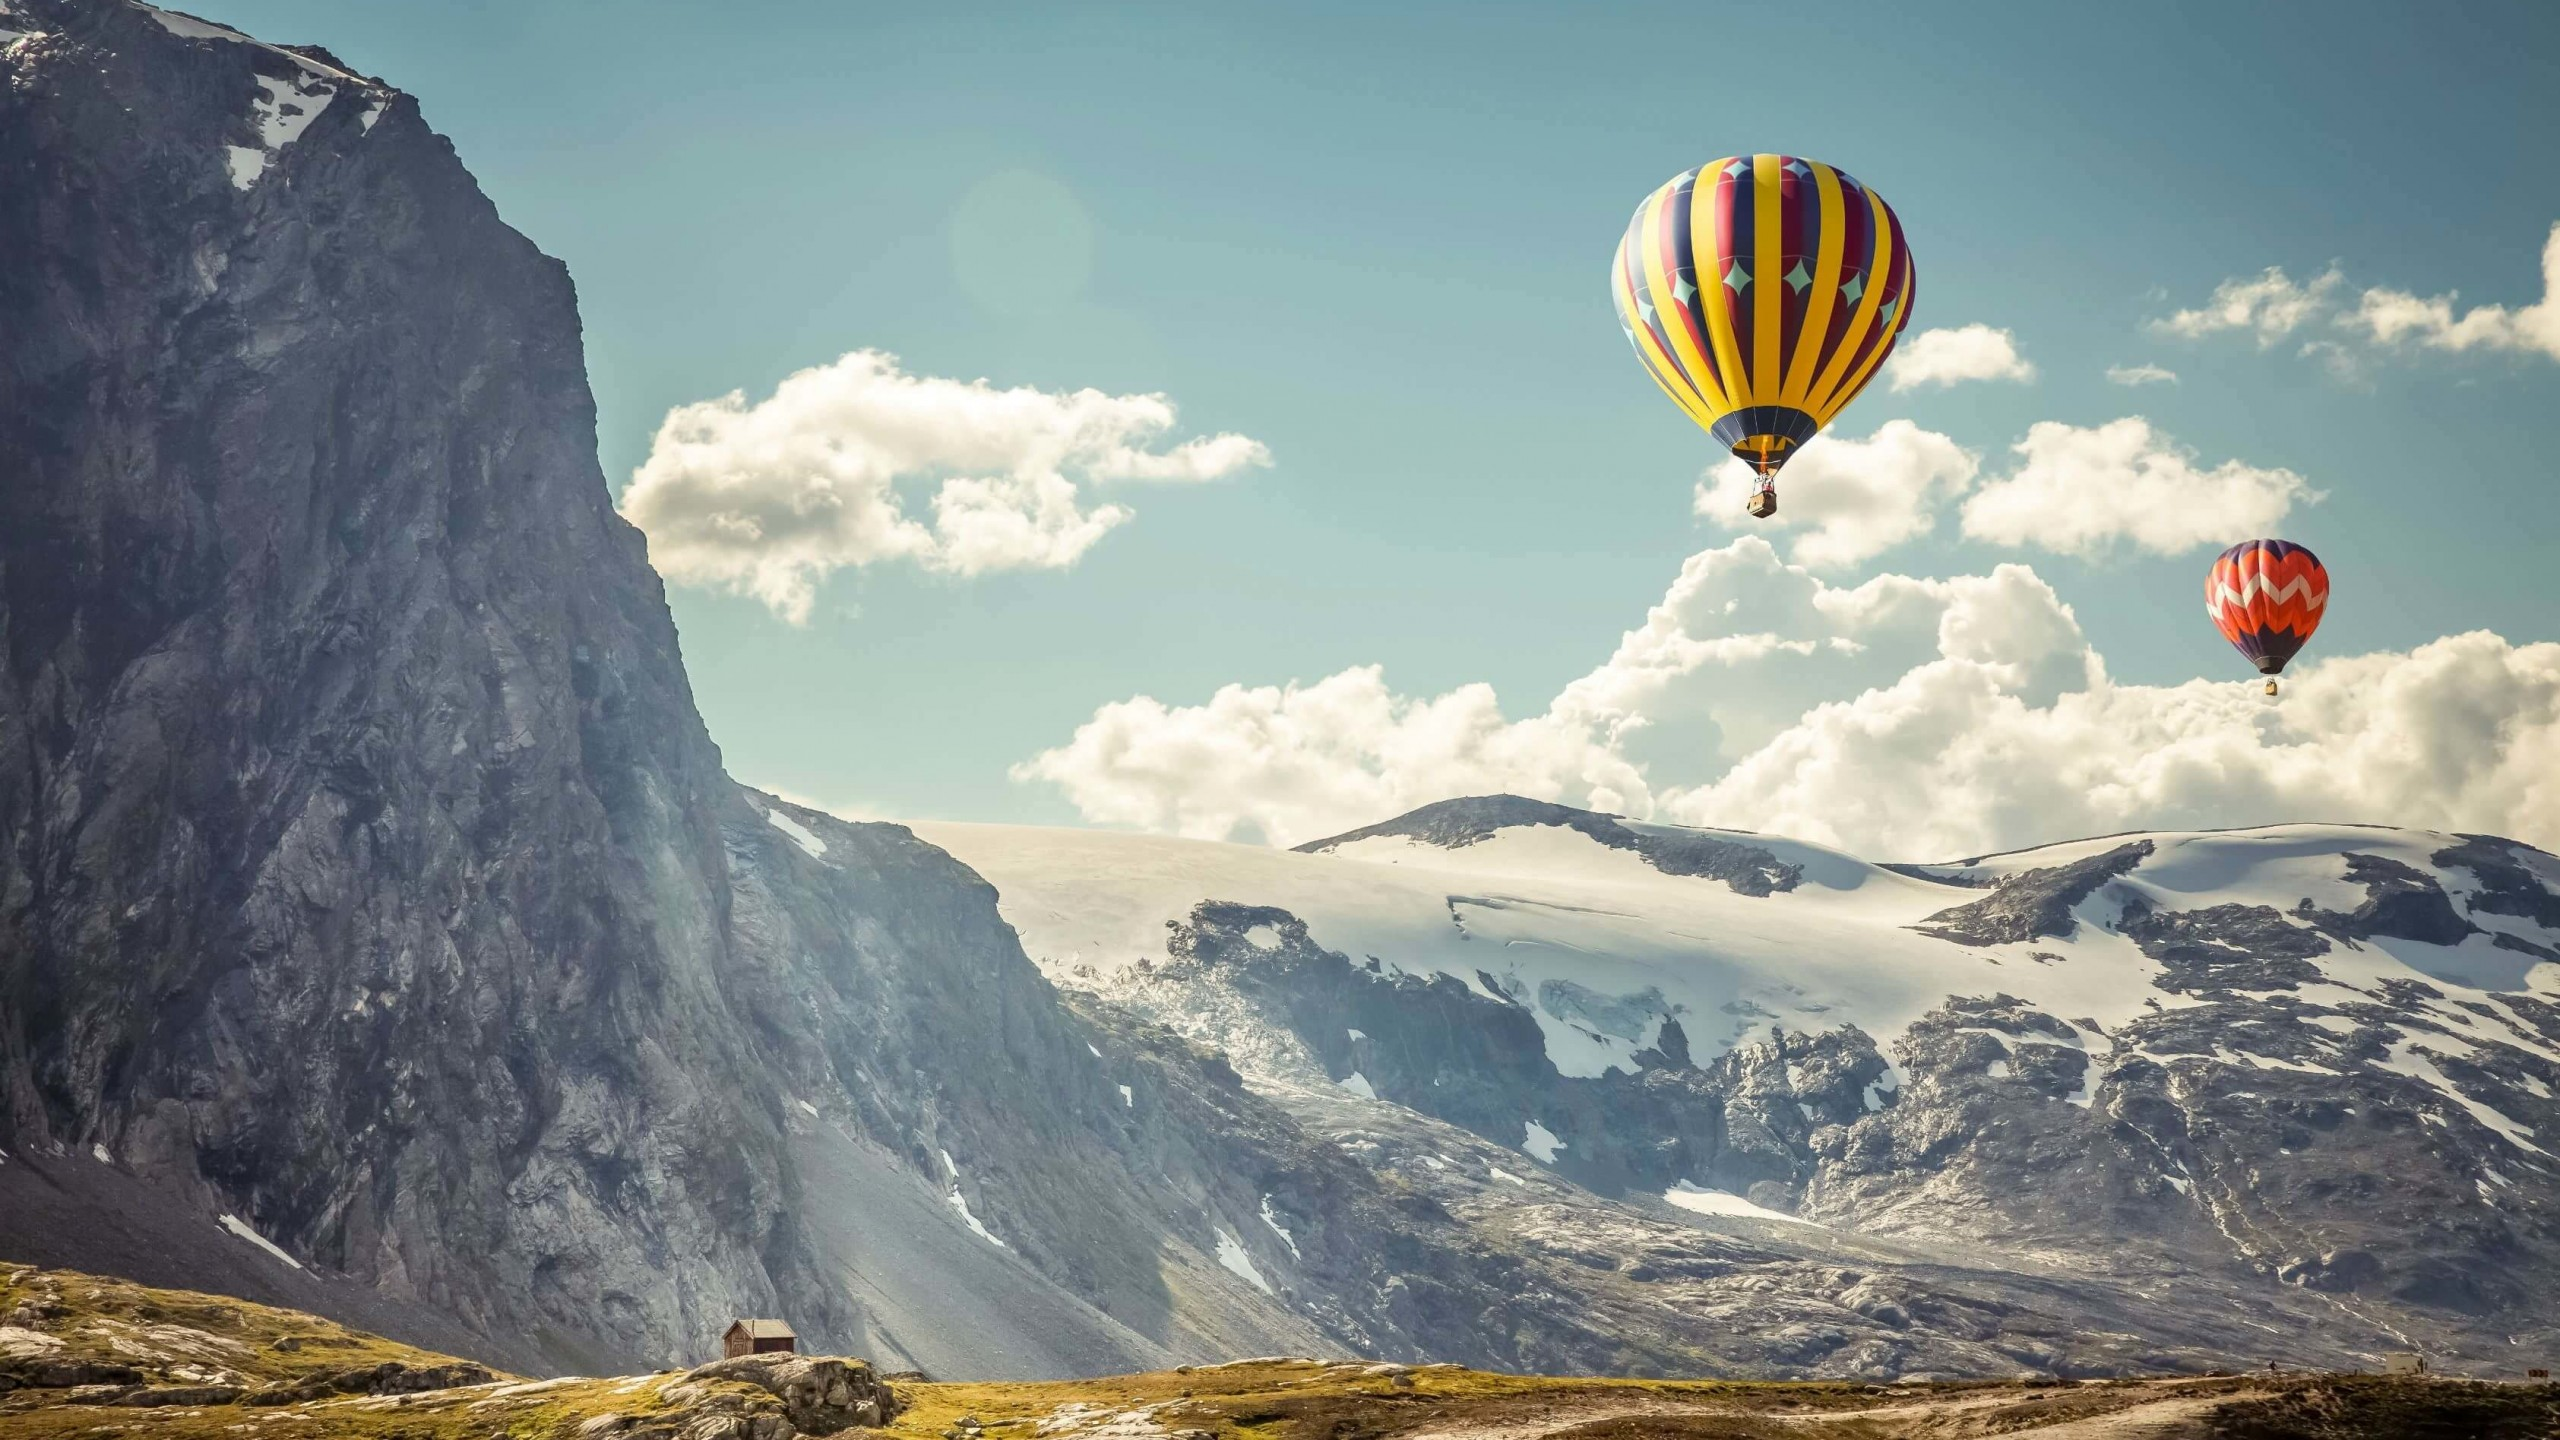 Hot Air Balloon Over the Mountain Wallpaper for Social Media YouTube Channel Art